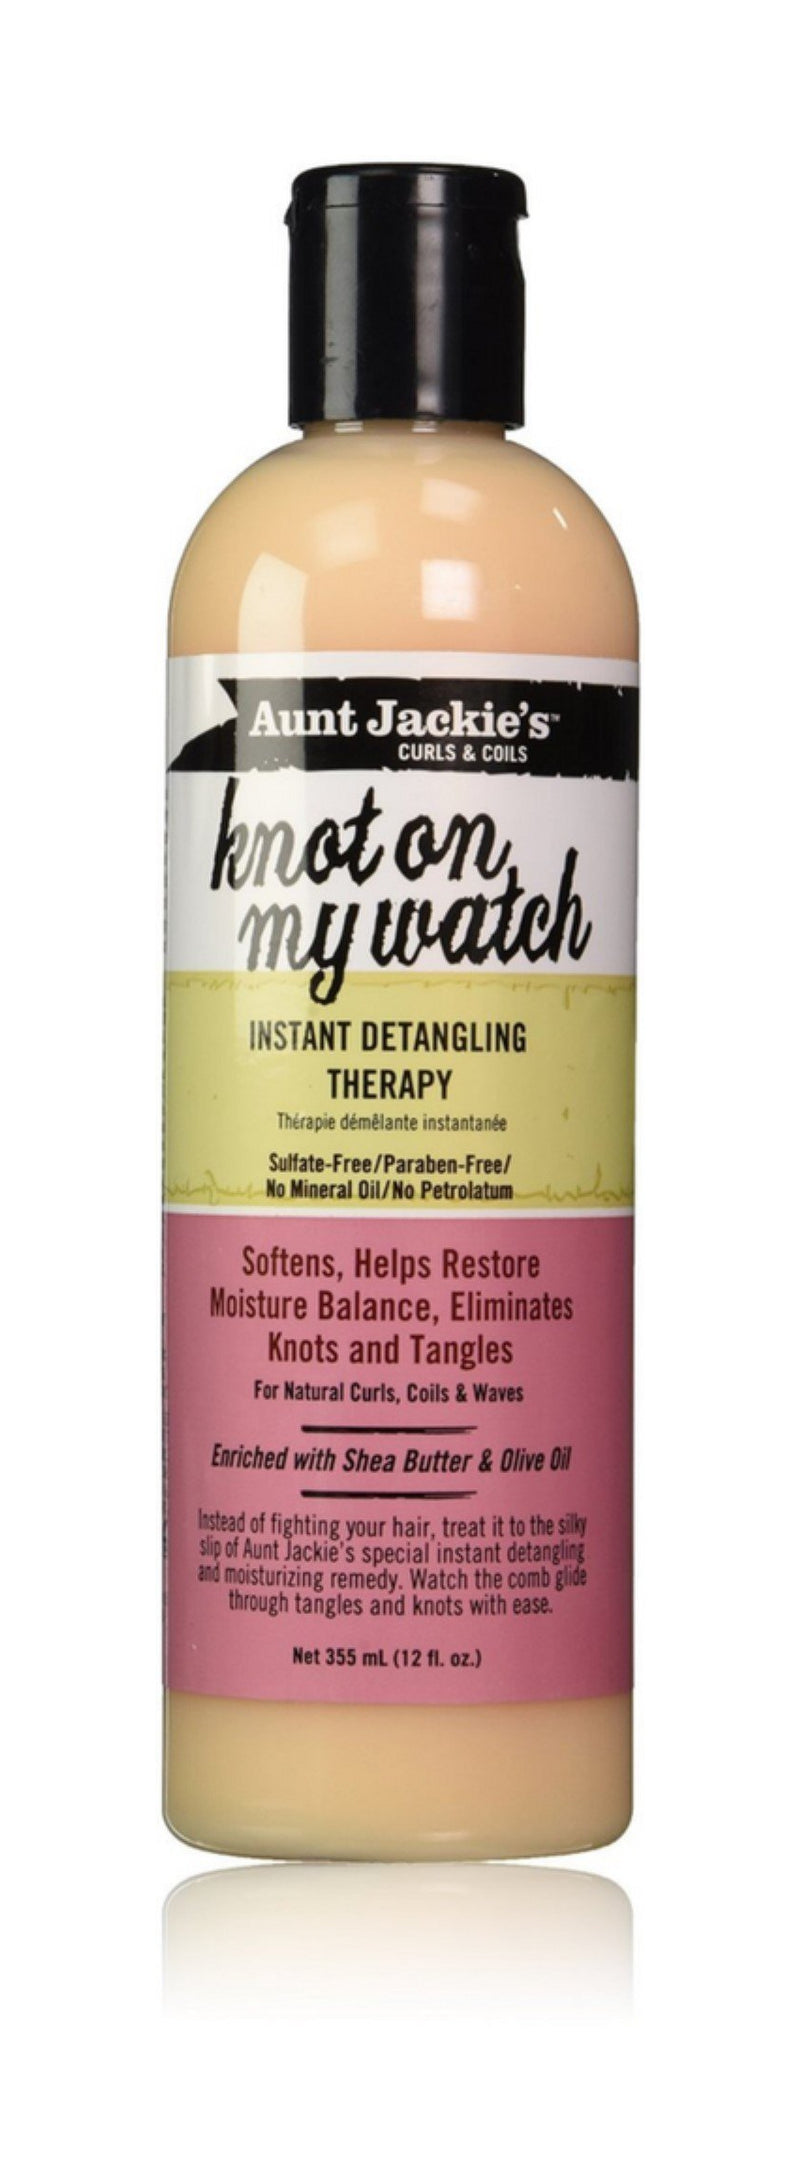 Aunt Jackie's Curls & Coils Knot On My Watch  Instant Detangling Therapy 6 oz.